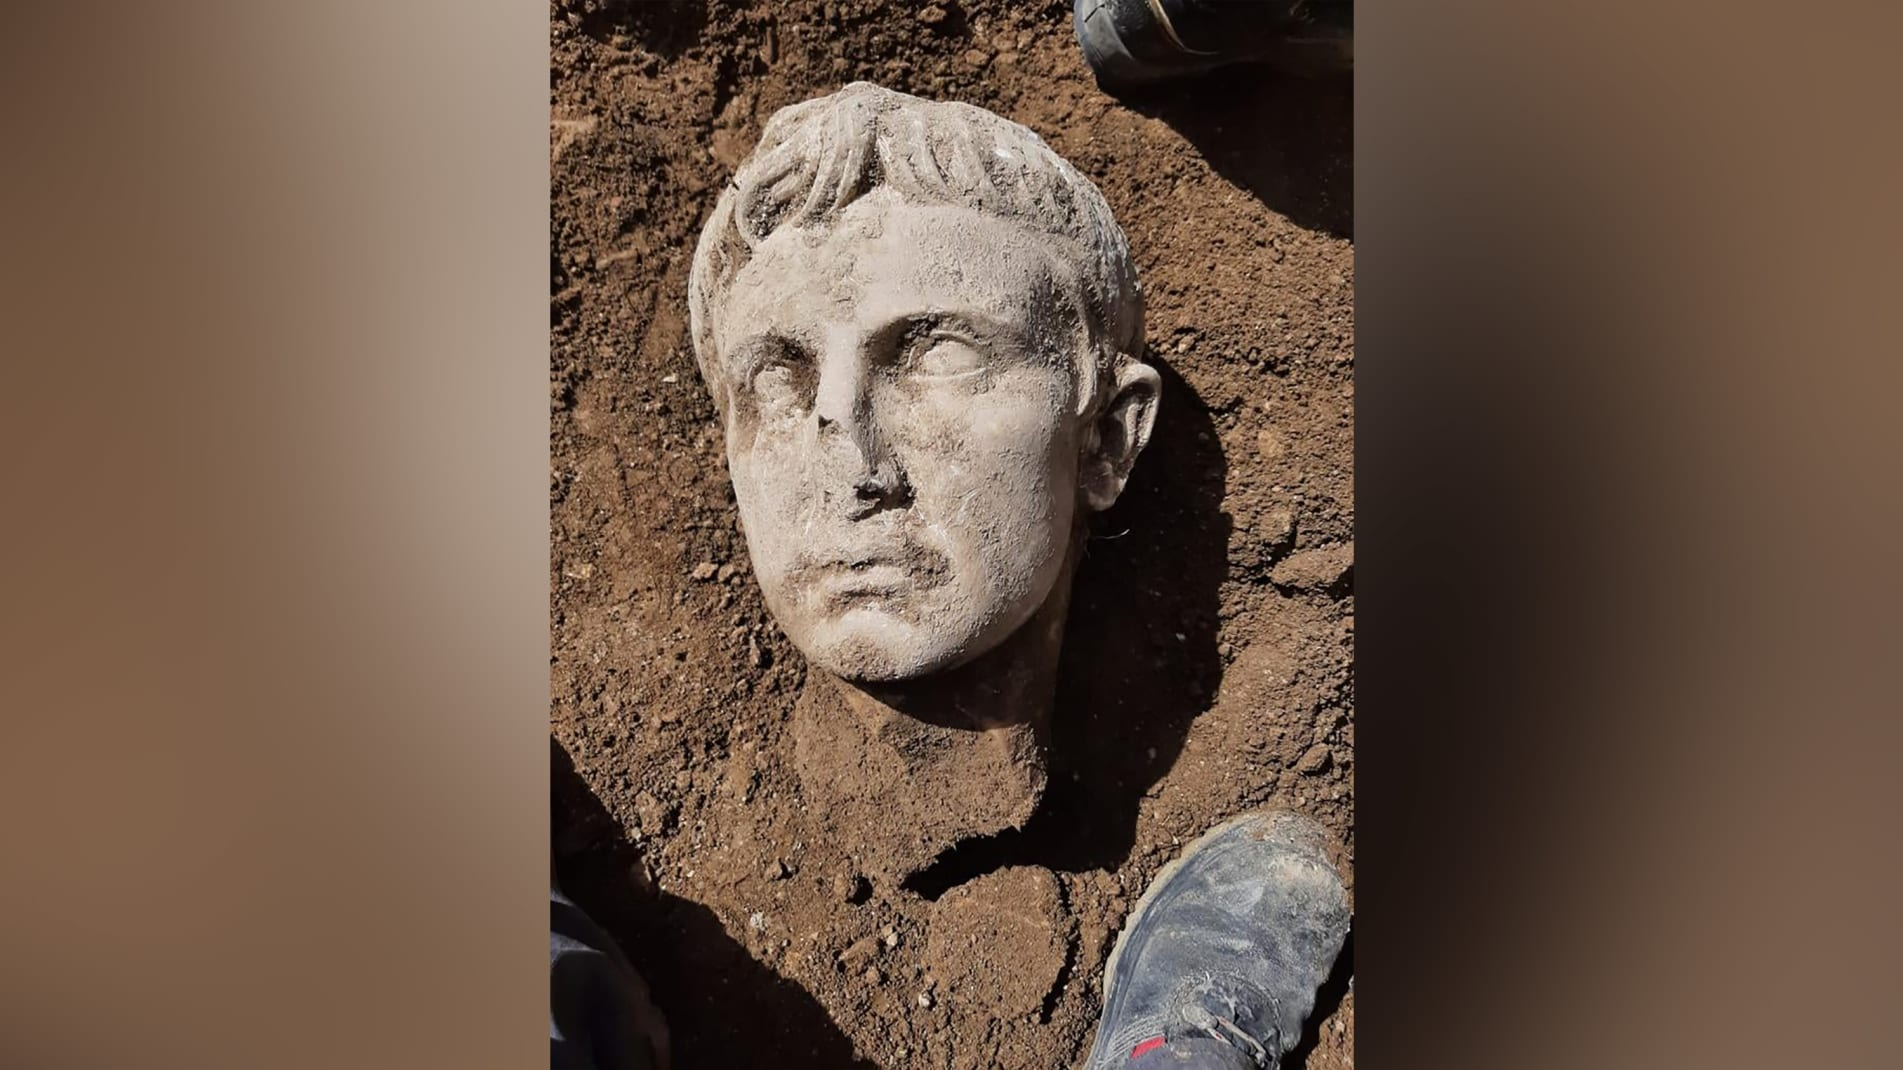 Archaeologists in central Italy have uncovered a marble head of Augustus Caesar, the first emperor of the Roman empire. The sculpture was discovered while renovating Isernia's historic city walls - built during the imperial Rome period.